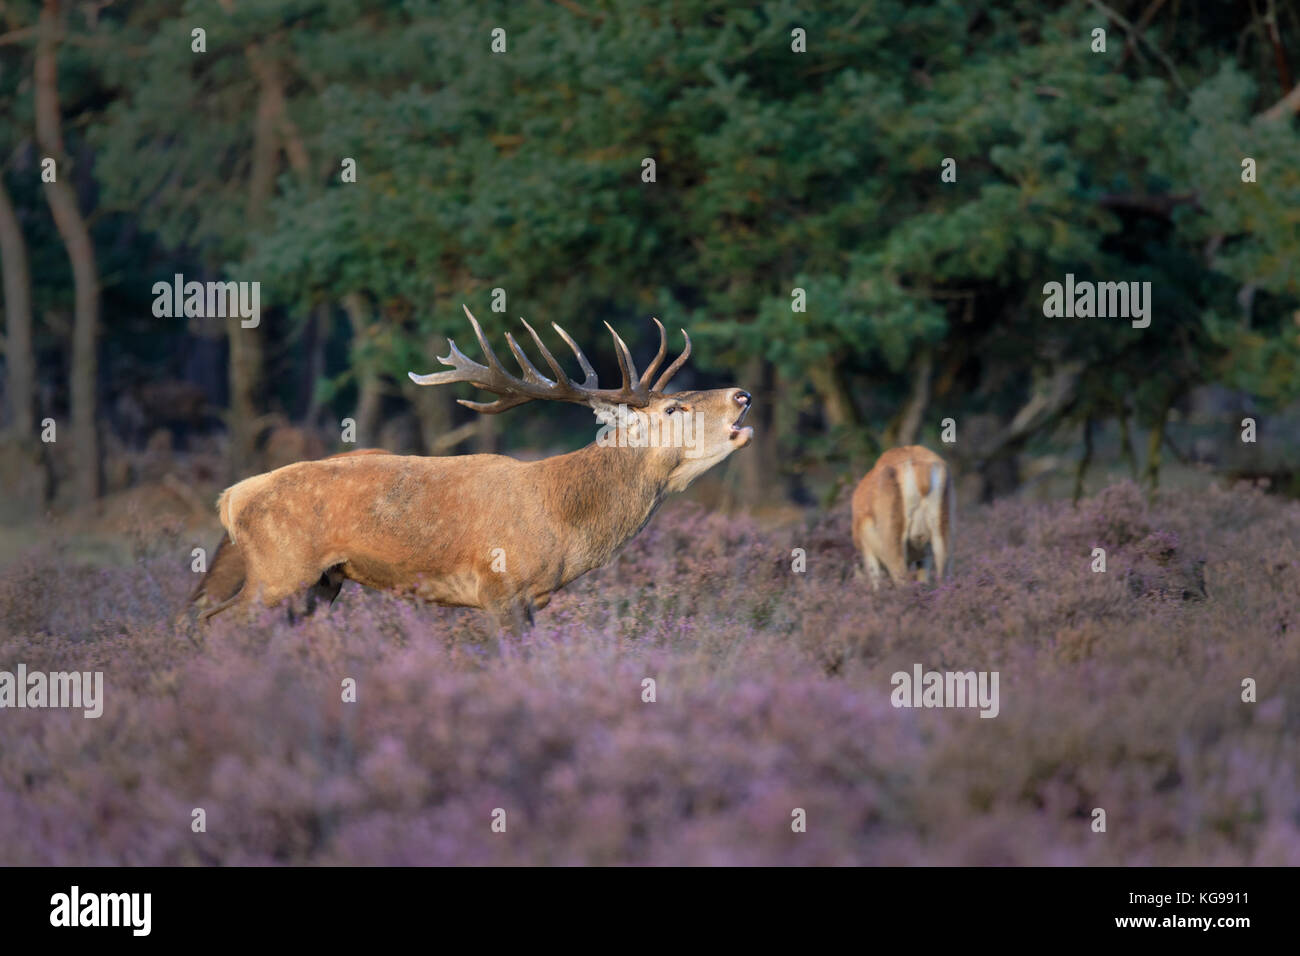 Red Deer (Cervus elaphus) Hoge Veluwe National Park, Netherland, Europe Stock Photo